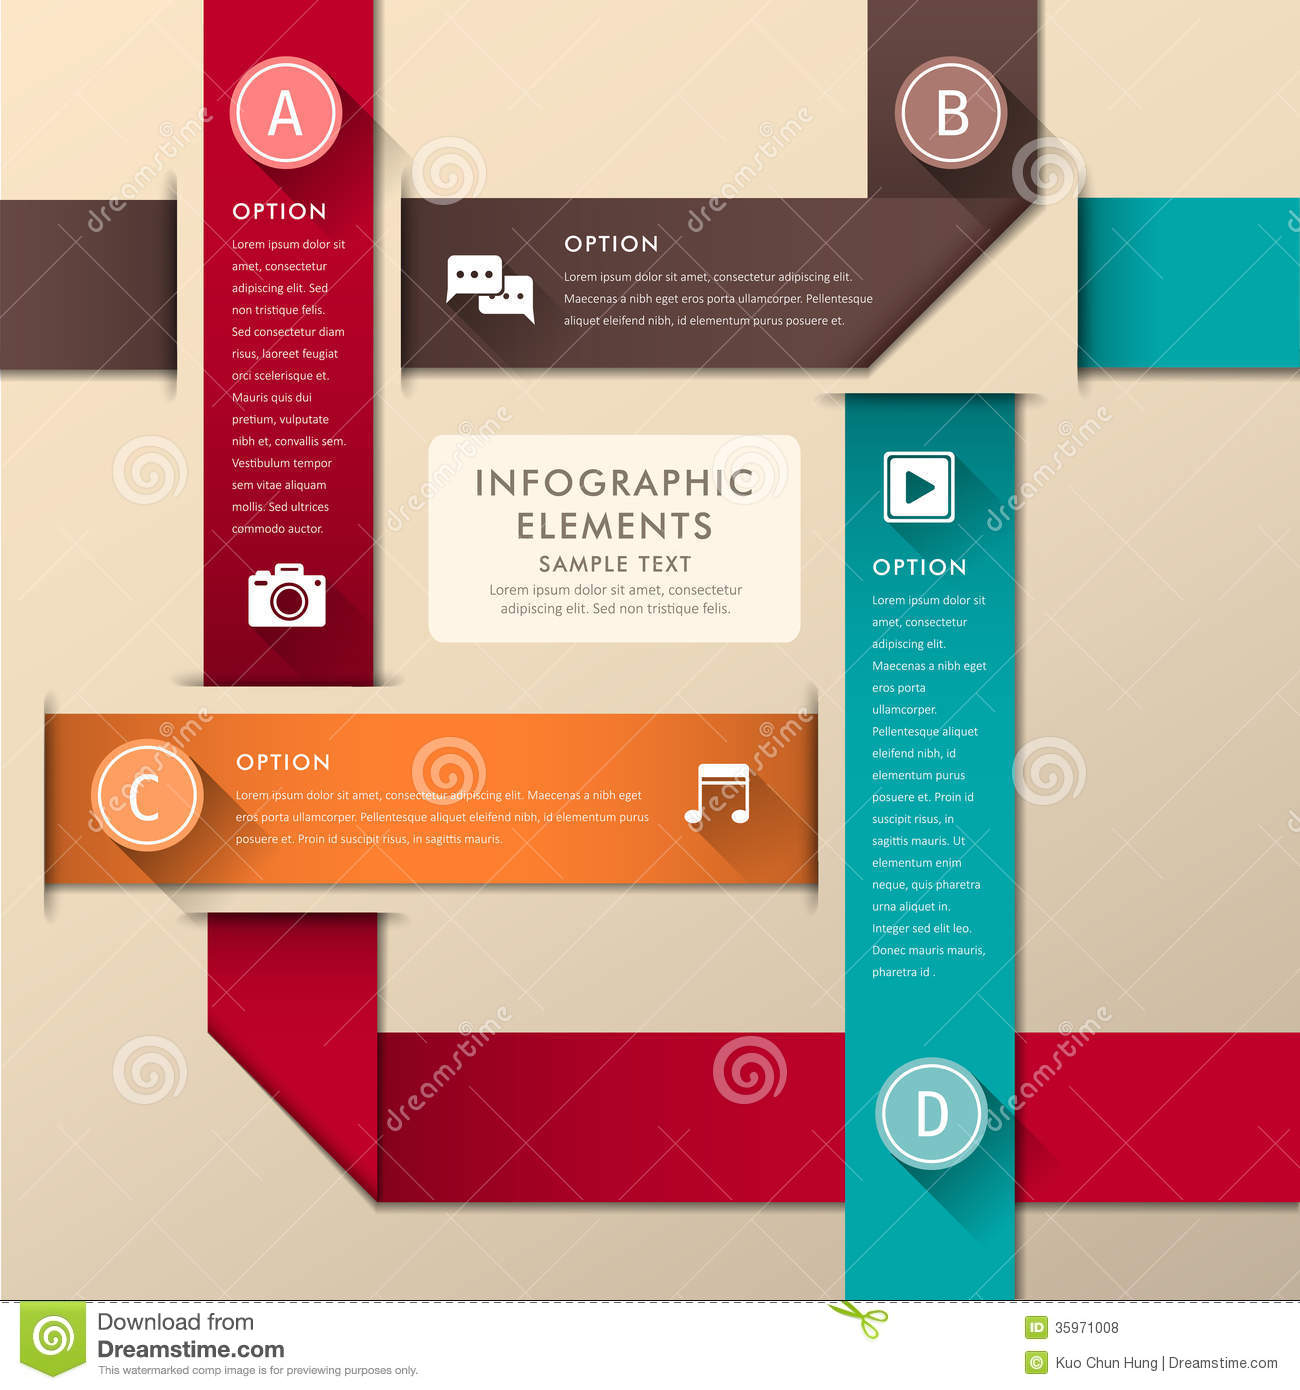 Microsoft template for infographic